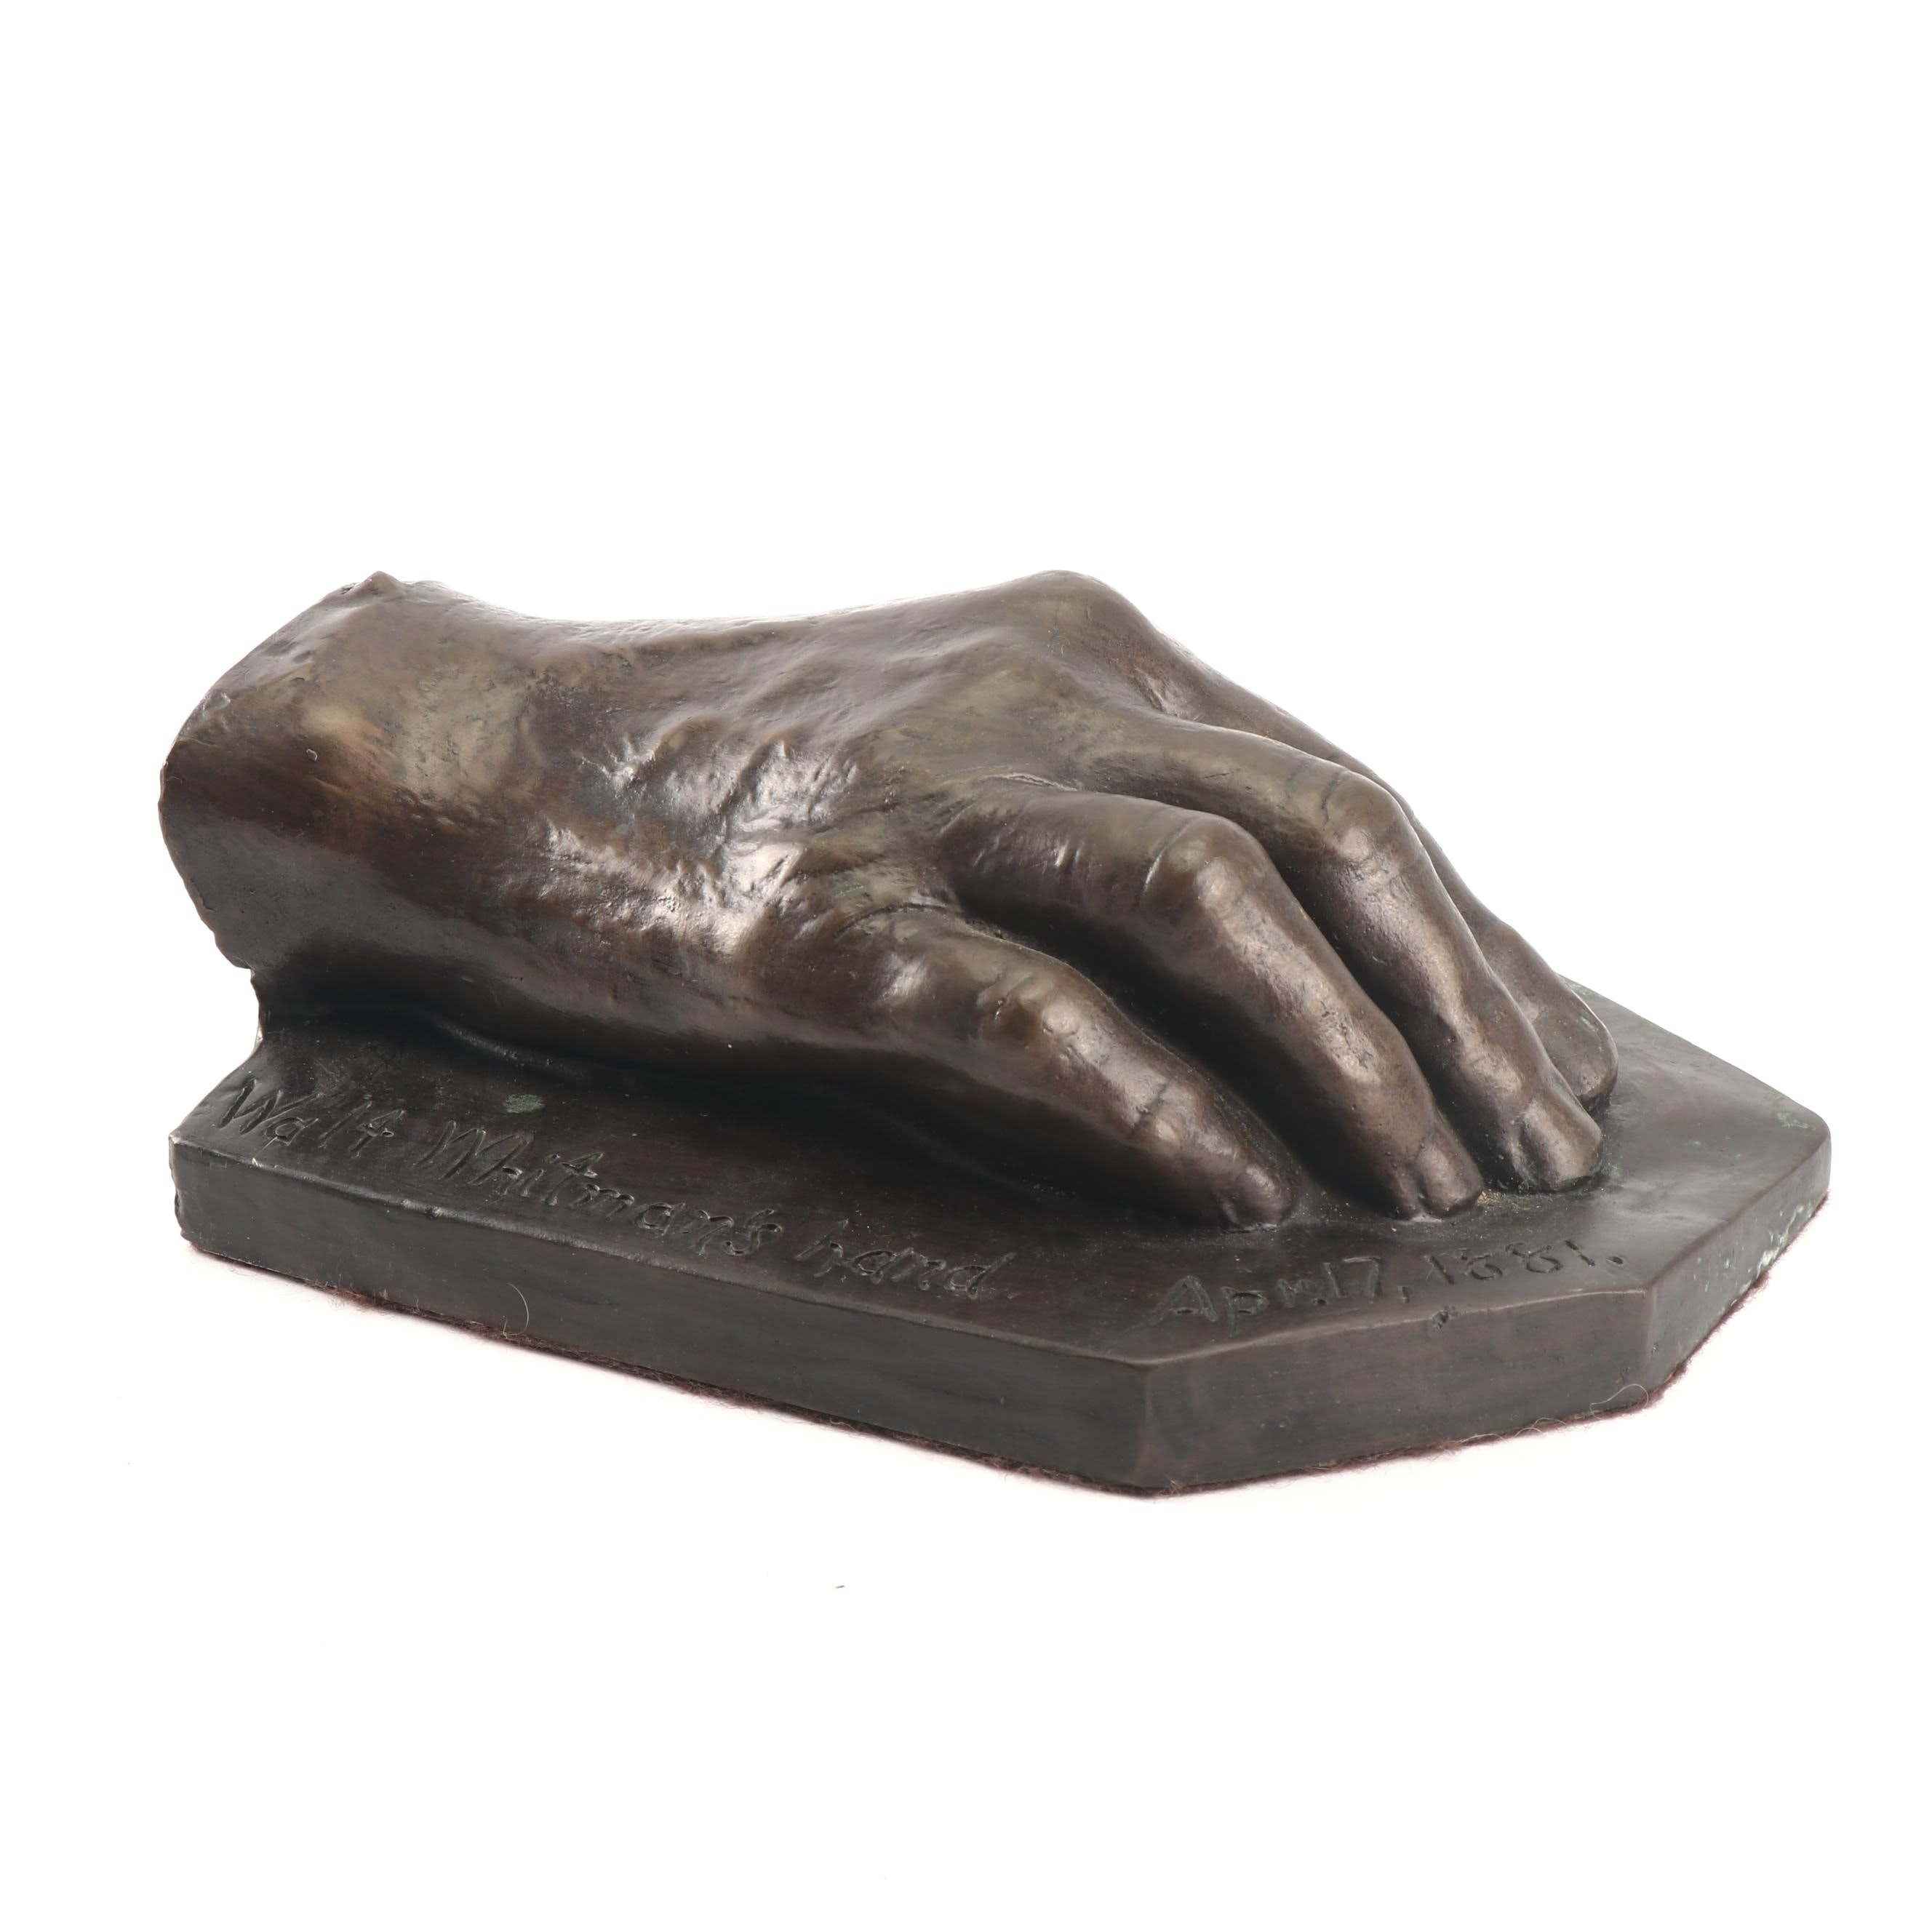 Limited Edition Reproduction Bronze Casting of Walt Whitman's Hand